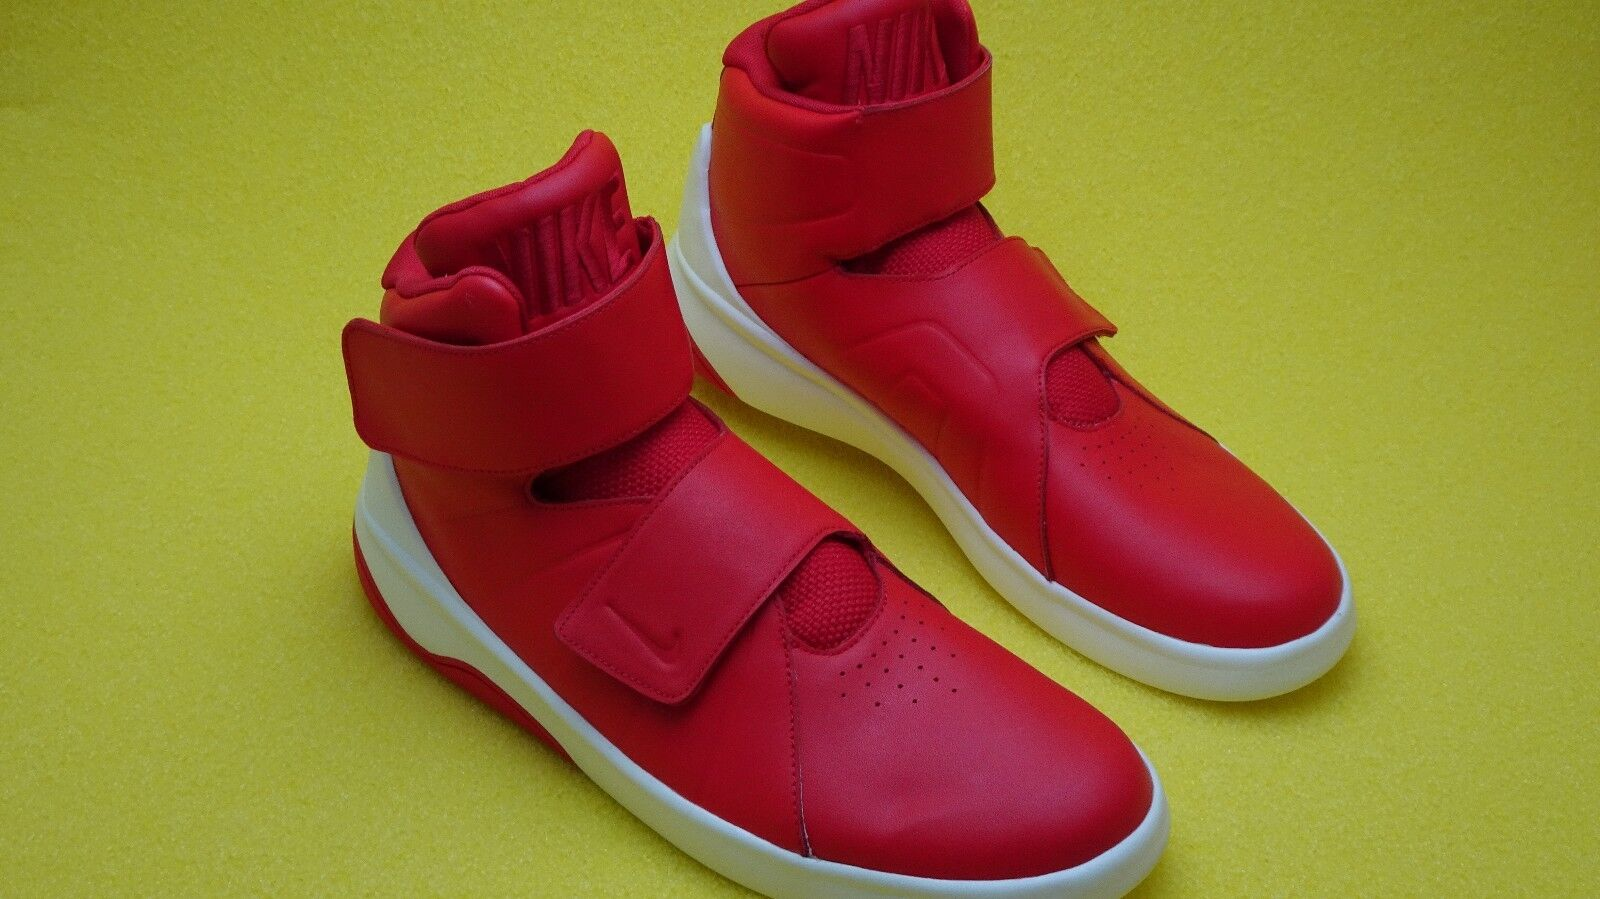 MEN'S NIKE MARXMAN SHOES red DAY black 832764 600 2 DAY red FREE SHIPPING MULTIPLE SIZES 0d3023